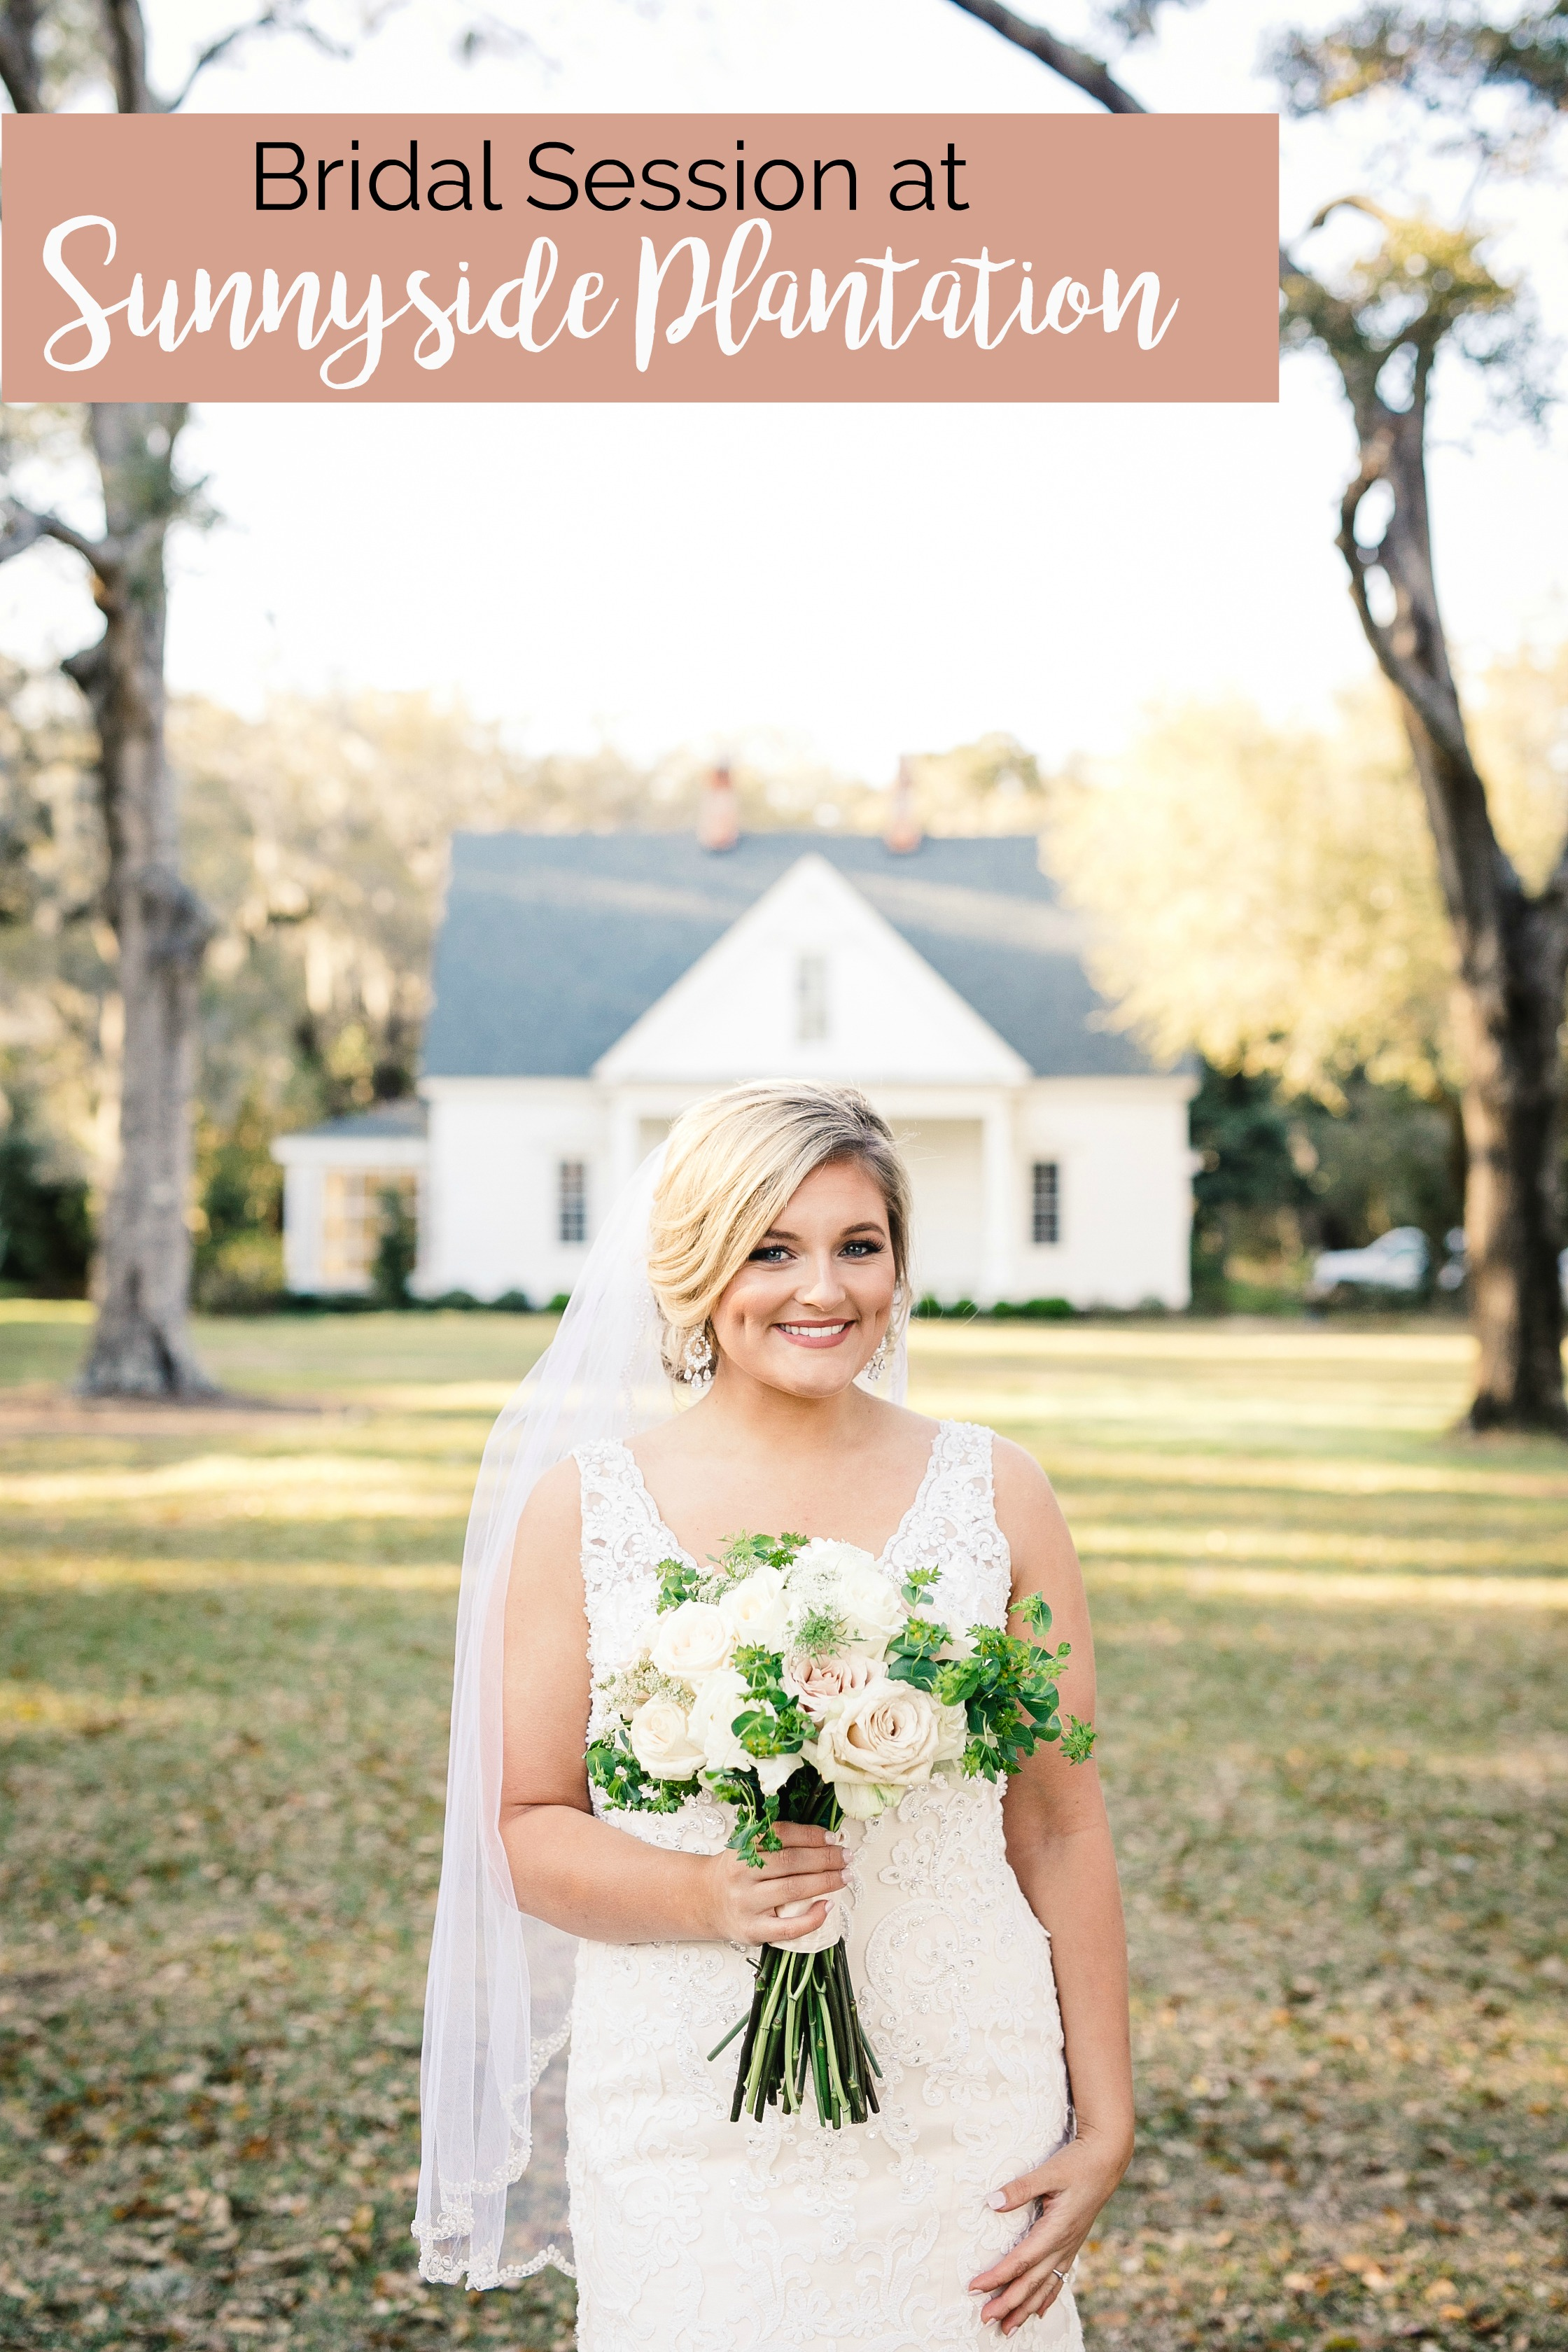 Cameron's Bridal Portrait Session at Sunnyside Plantation, Murrells Inlet, South Carolina | Palmetto State Weddings | Images by Heidi | where to get married in Myrtle Beach